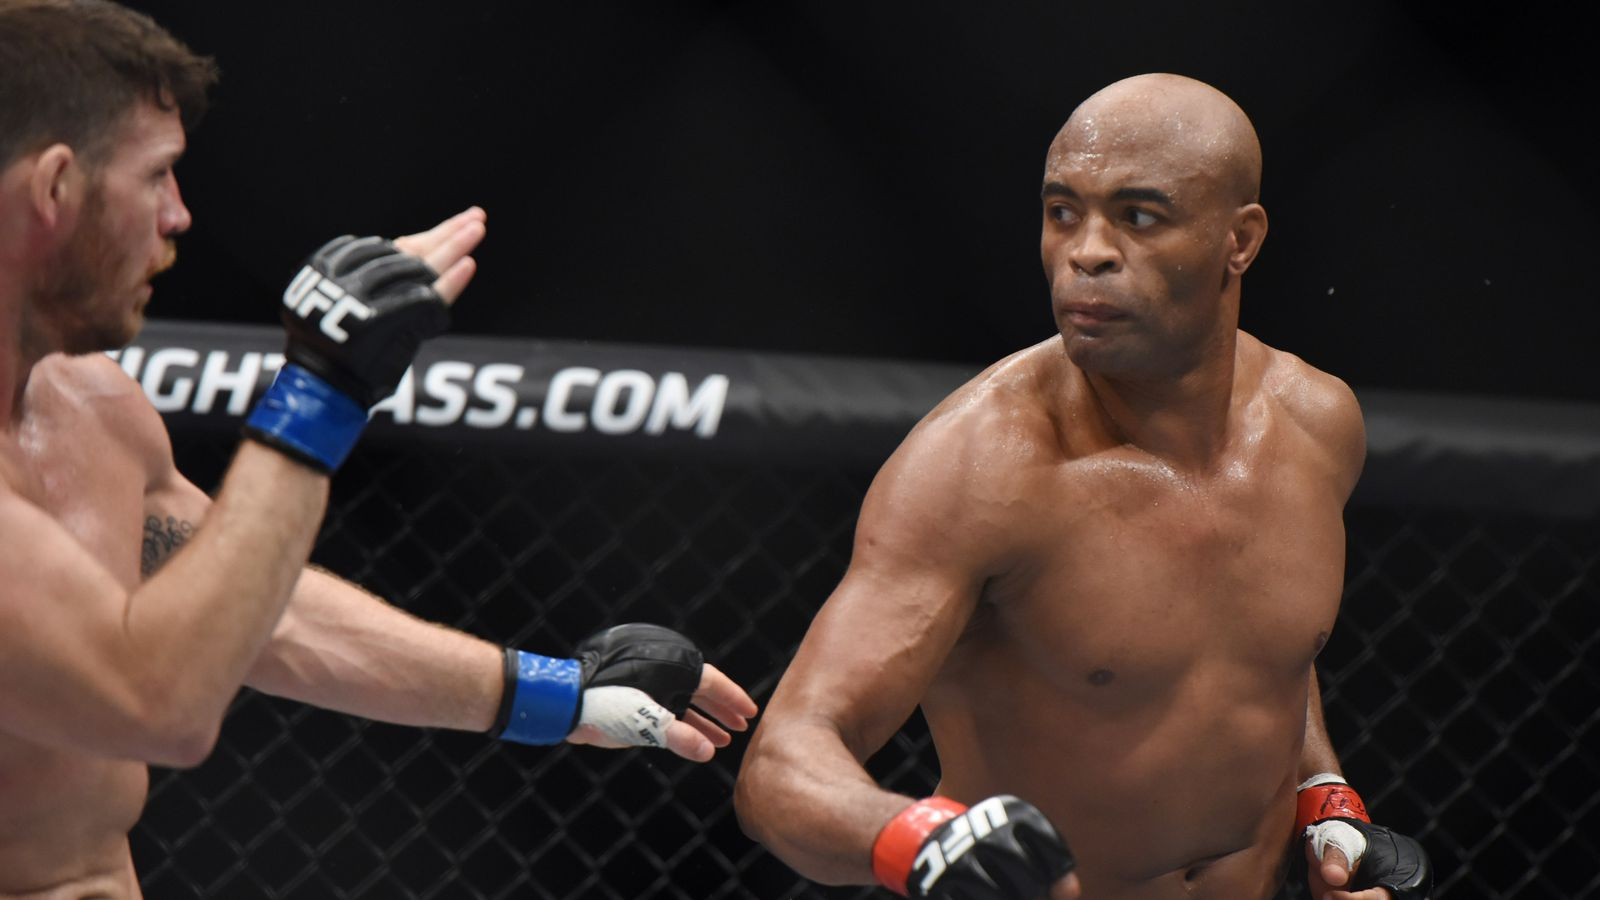 Anderson Silva wants to return to action at UFC 200 - Bloody Elbow